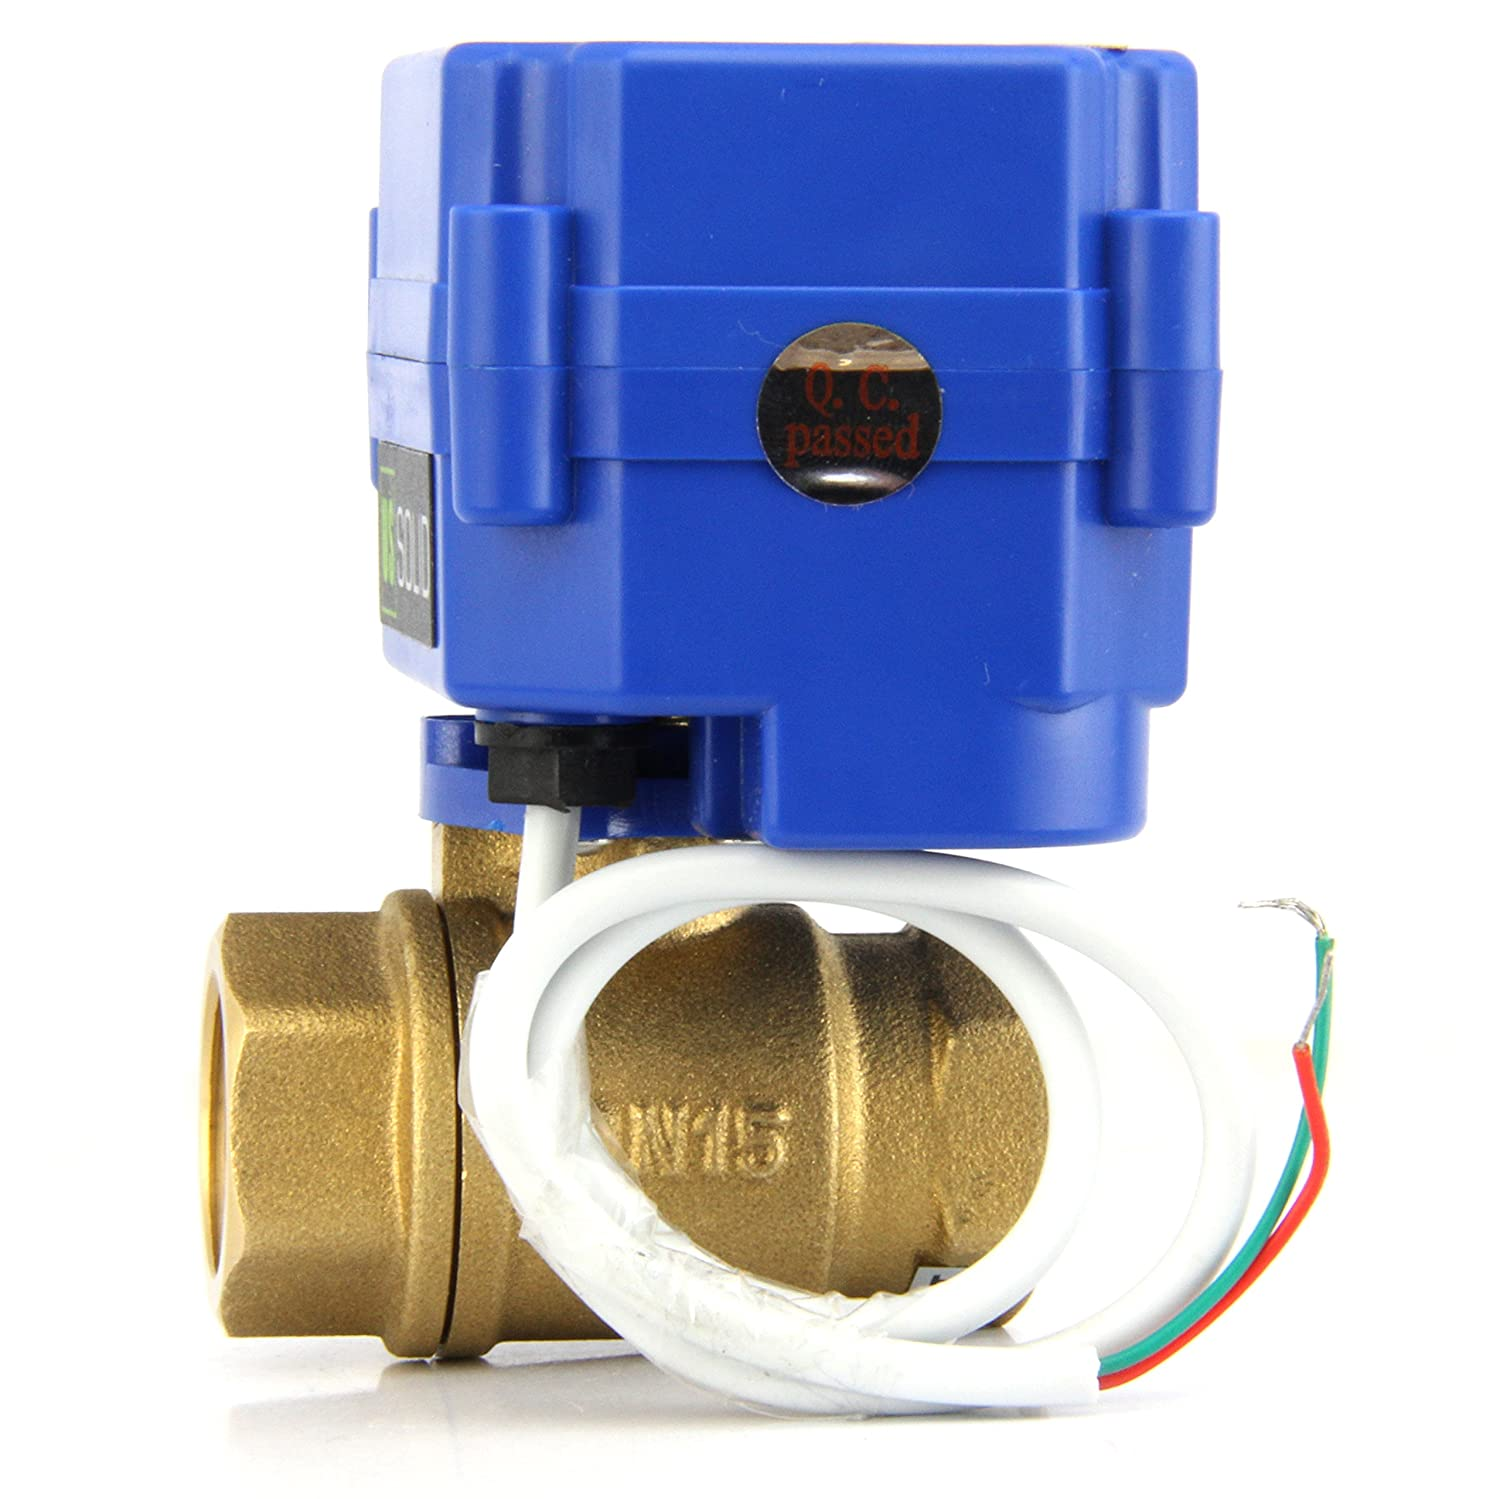 9-24V AC//DC and 2 Wire Auto Return Setup by U.S Solid Motorized Ball Valve 3//4 Brass Ball Valve with Standard Port